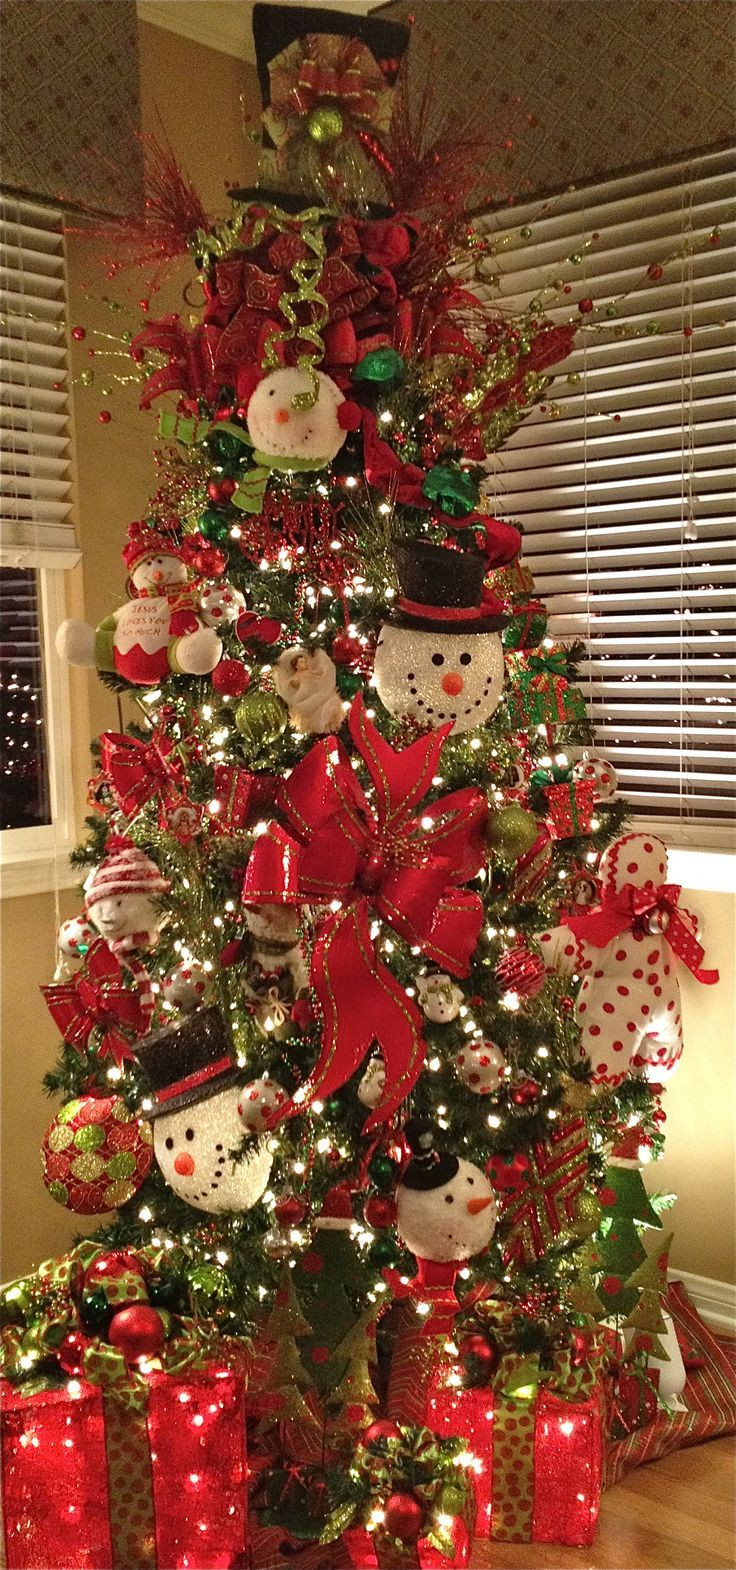 12 christmas tree decor ideas toy top cheap easy party design project